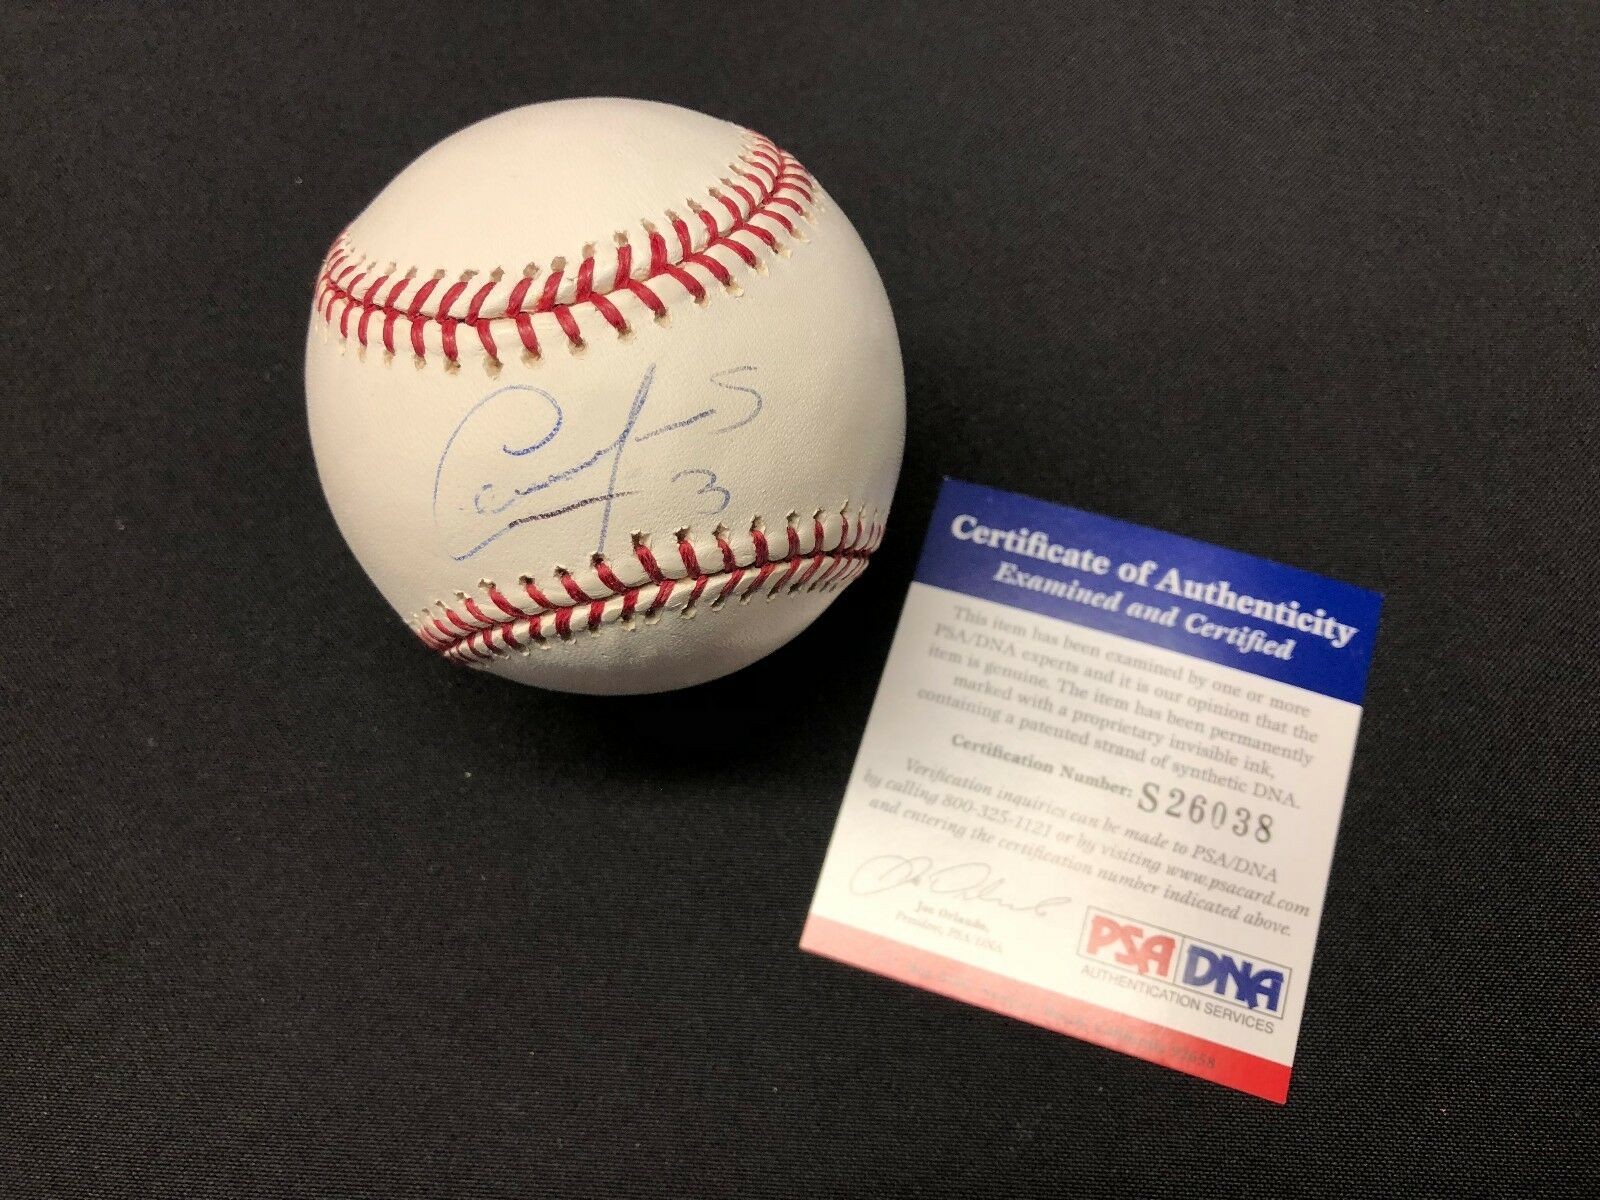 Cesar Izturis Signed Major League Baseball MLB *Dodgers *Cubs PSA S26038